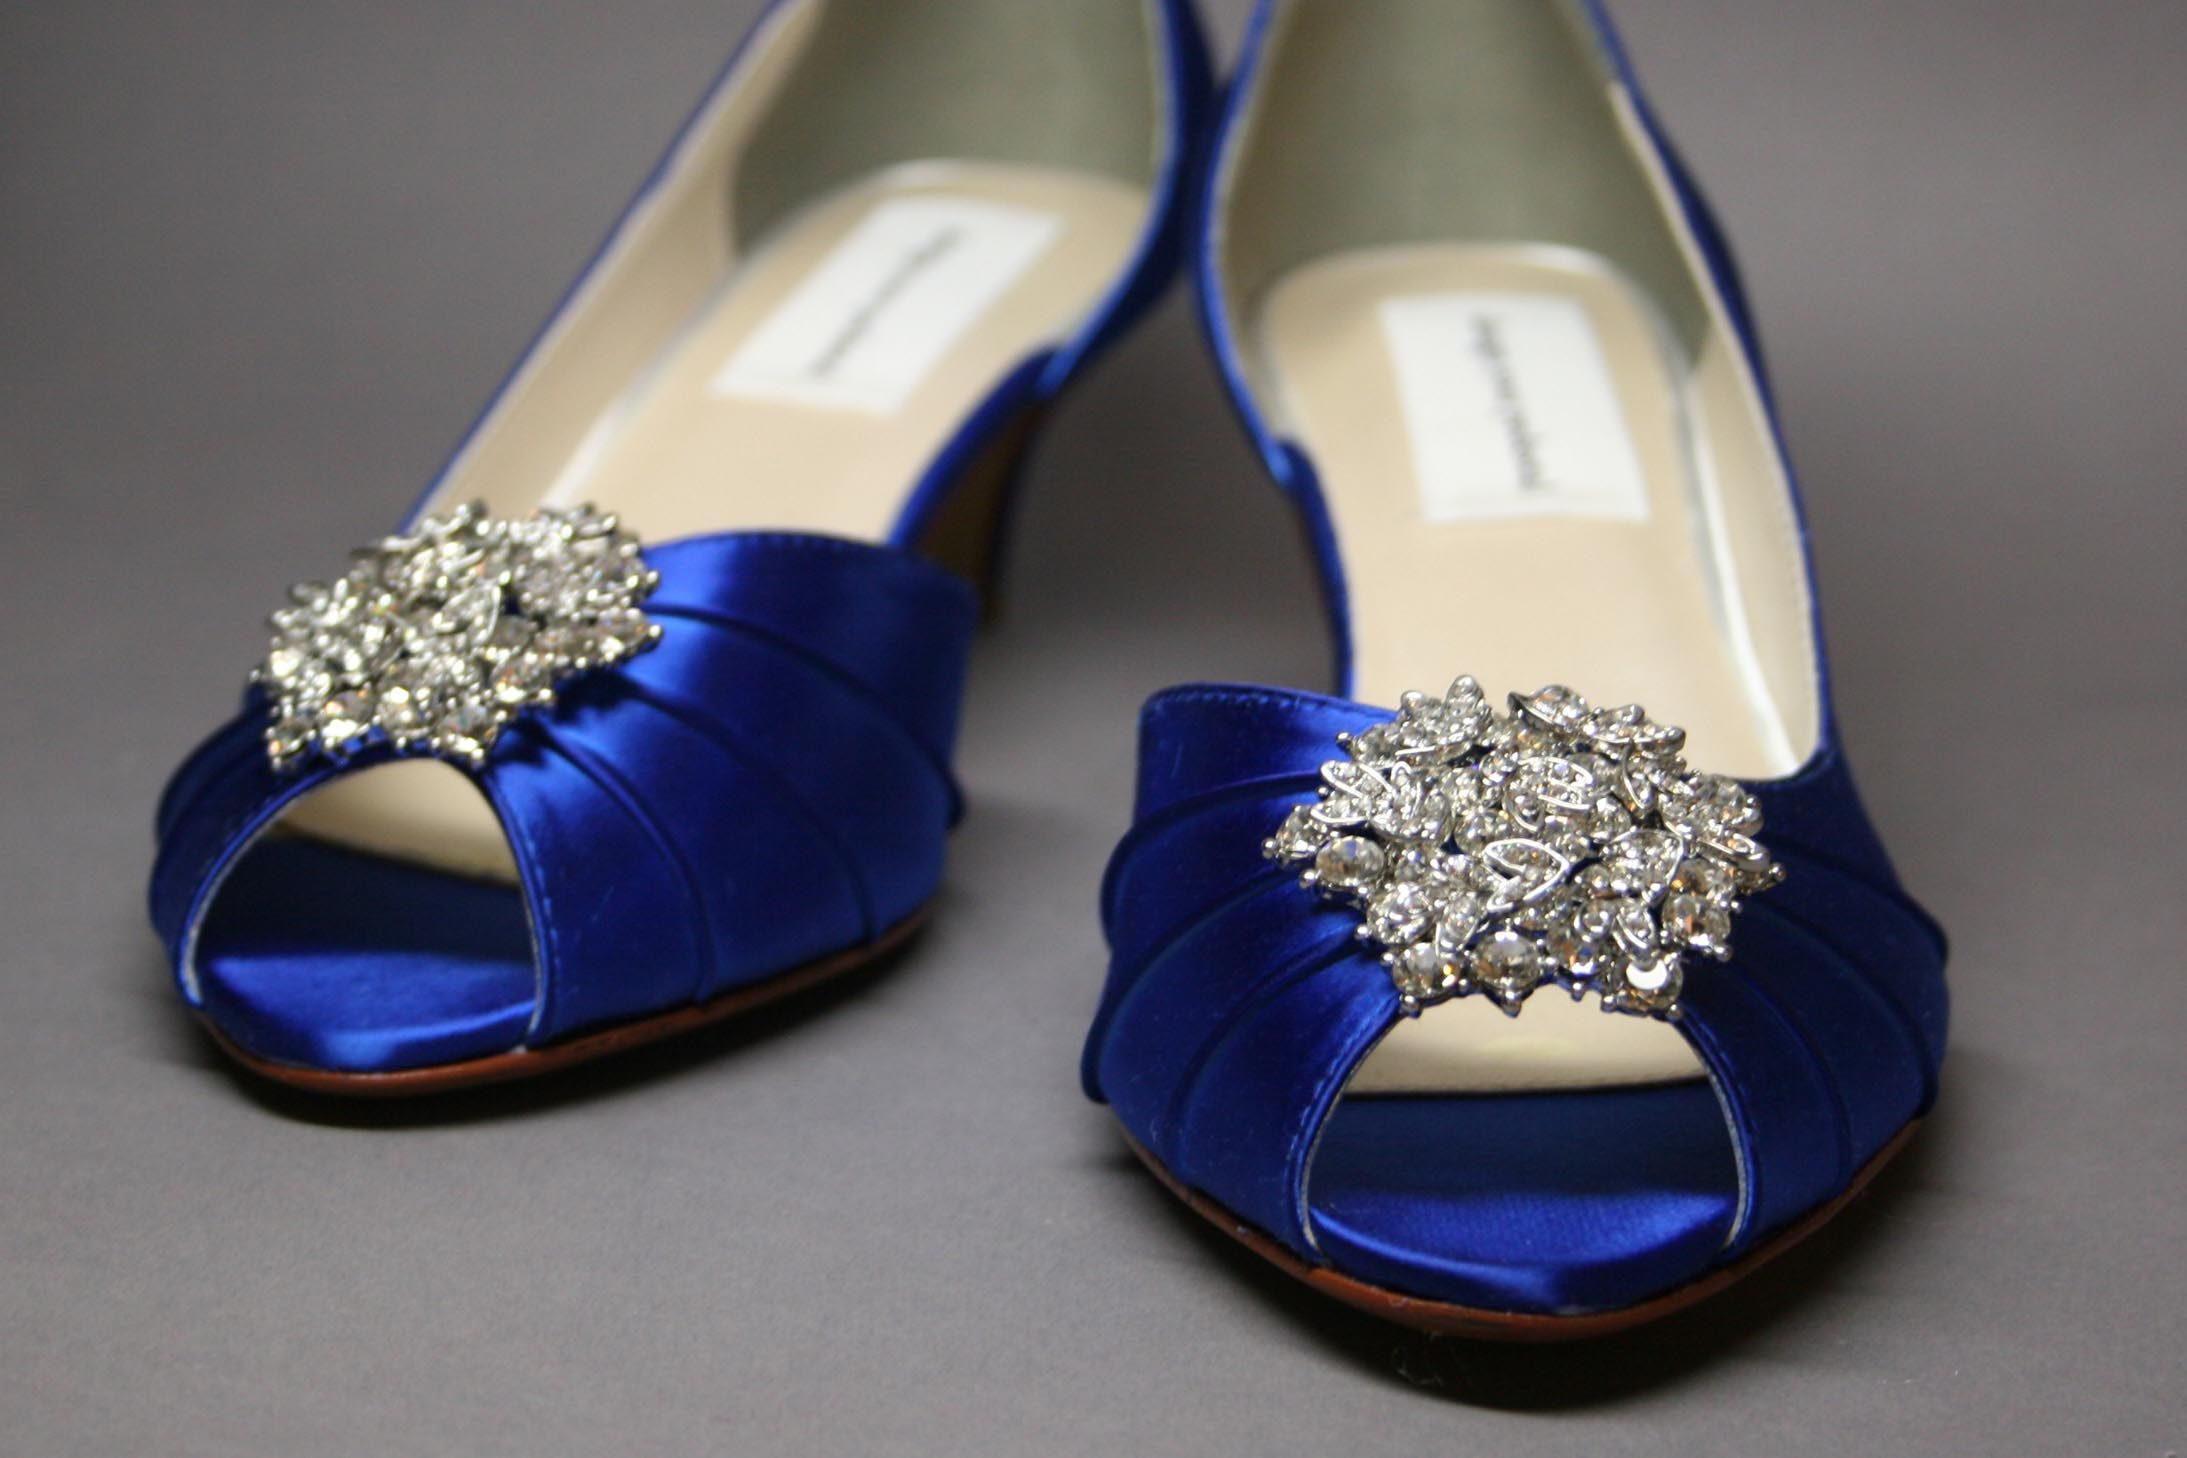 royal blue shoes - HD 2187×1458